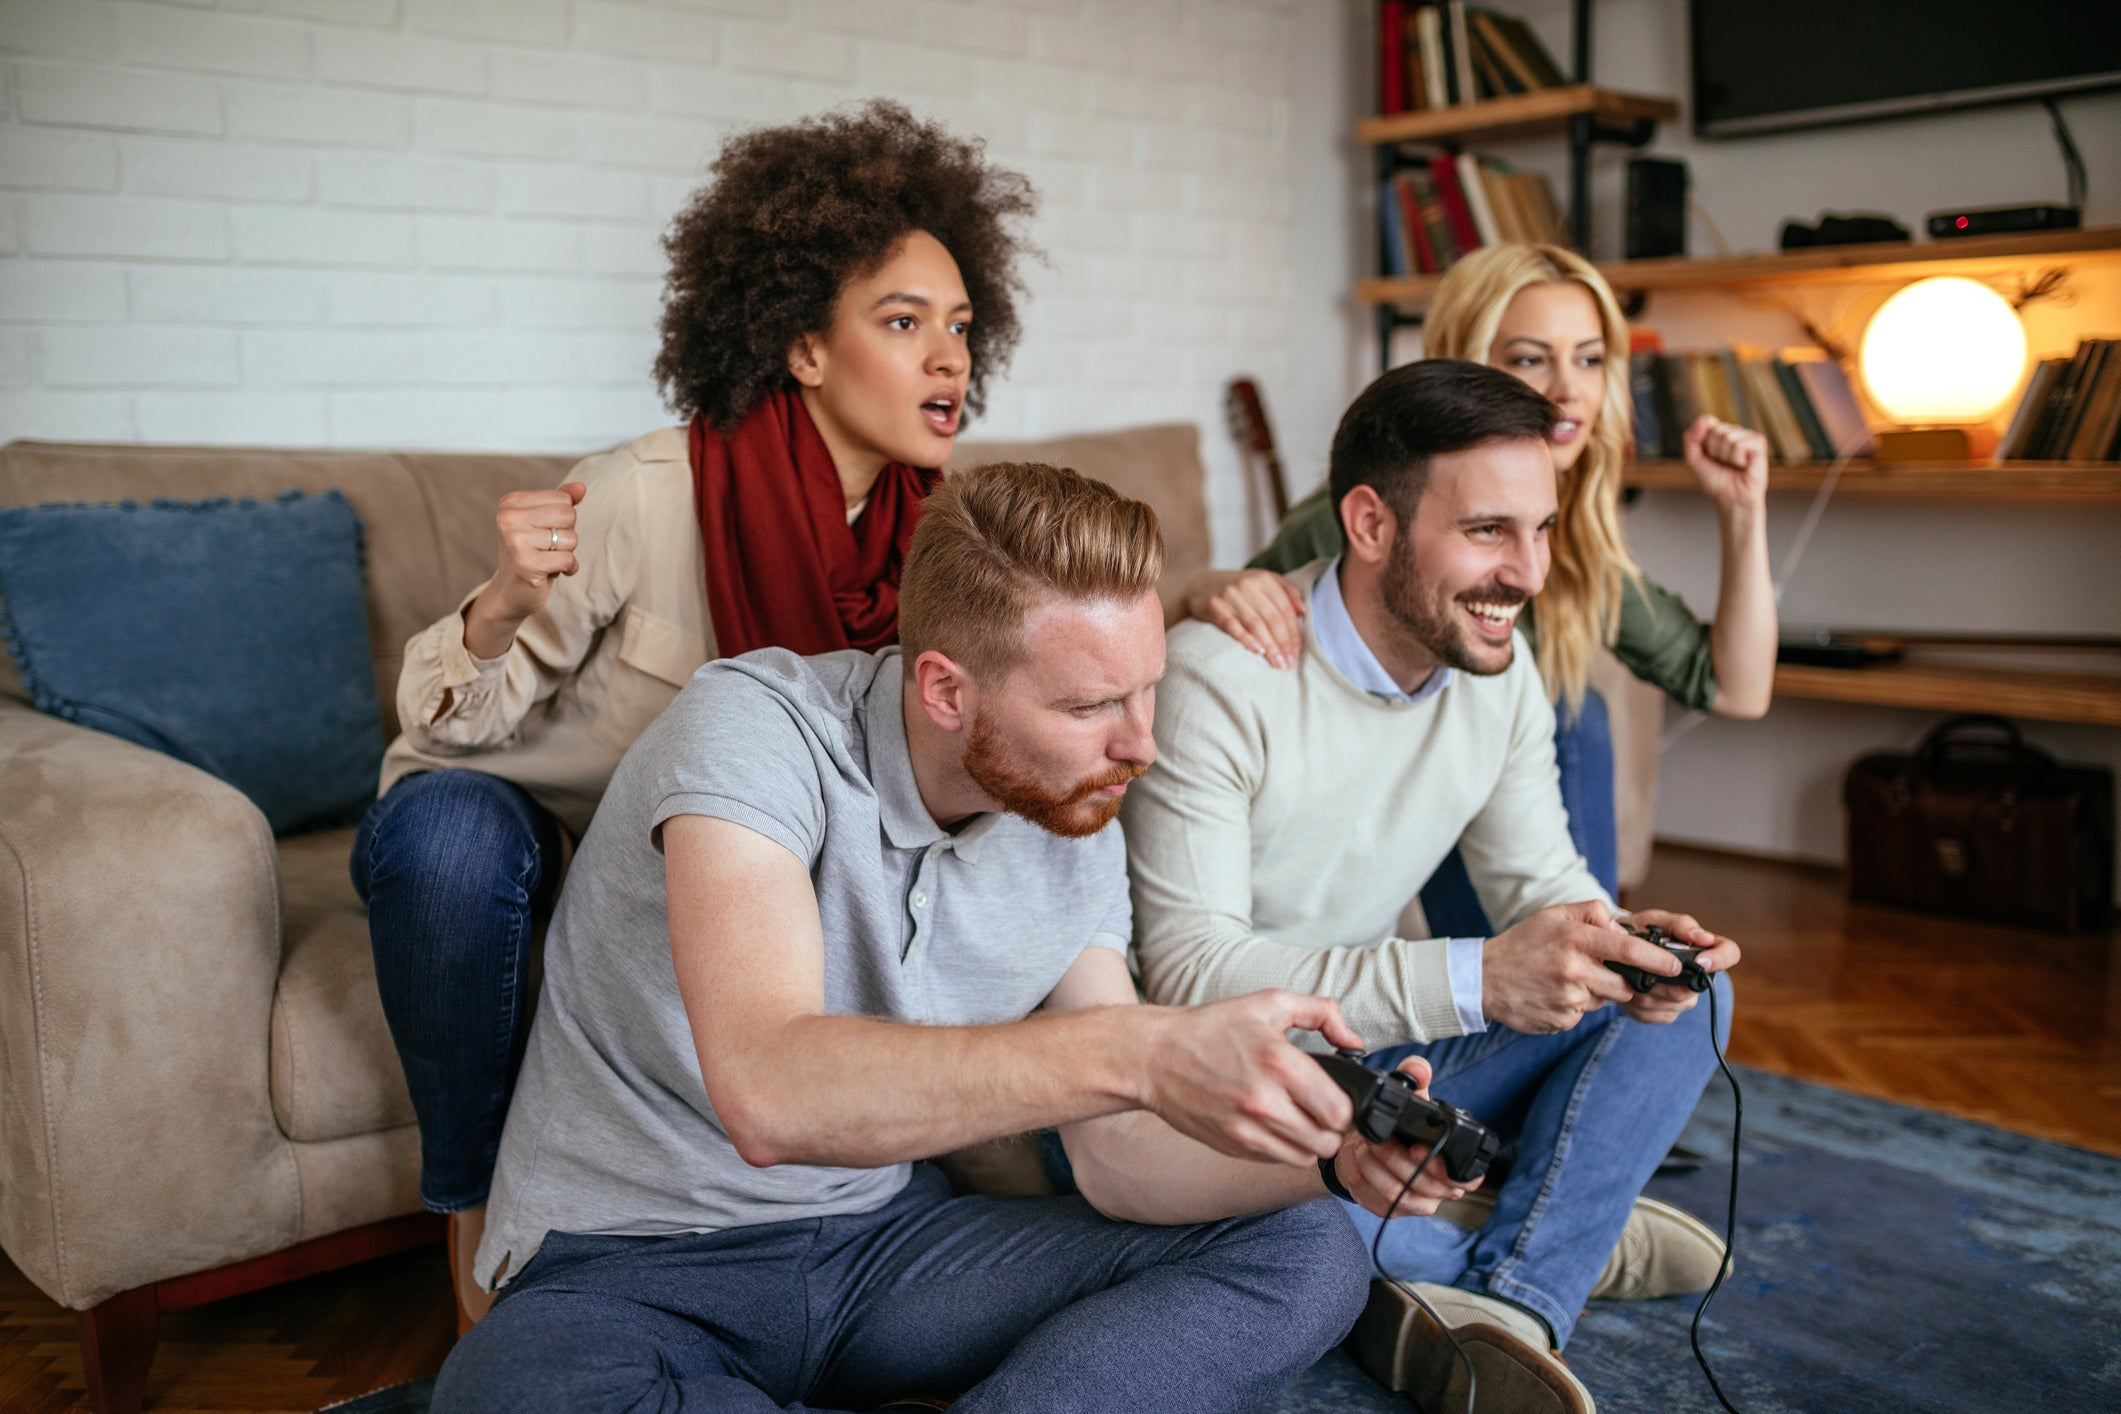 Four young adults play a video game in a living room.